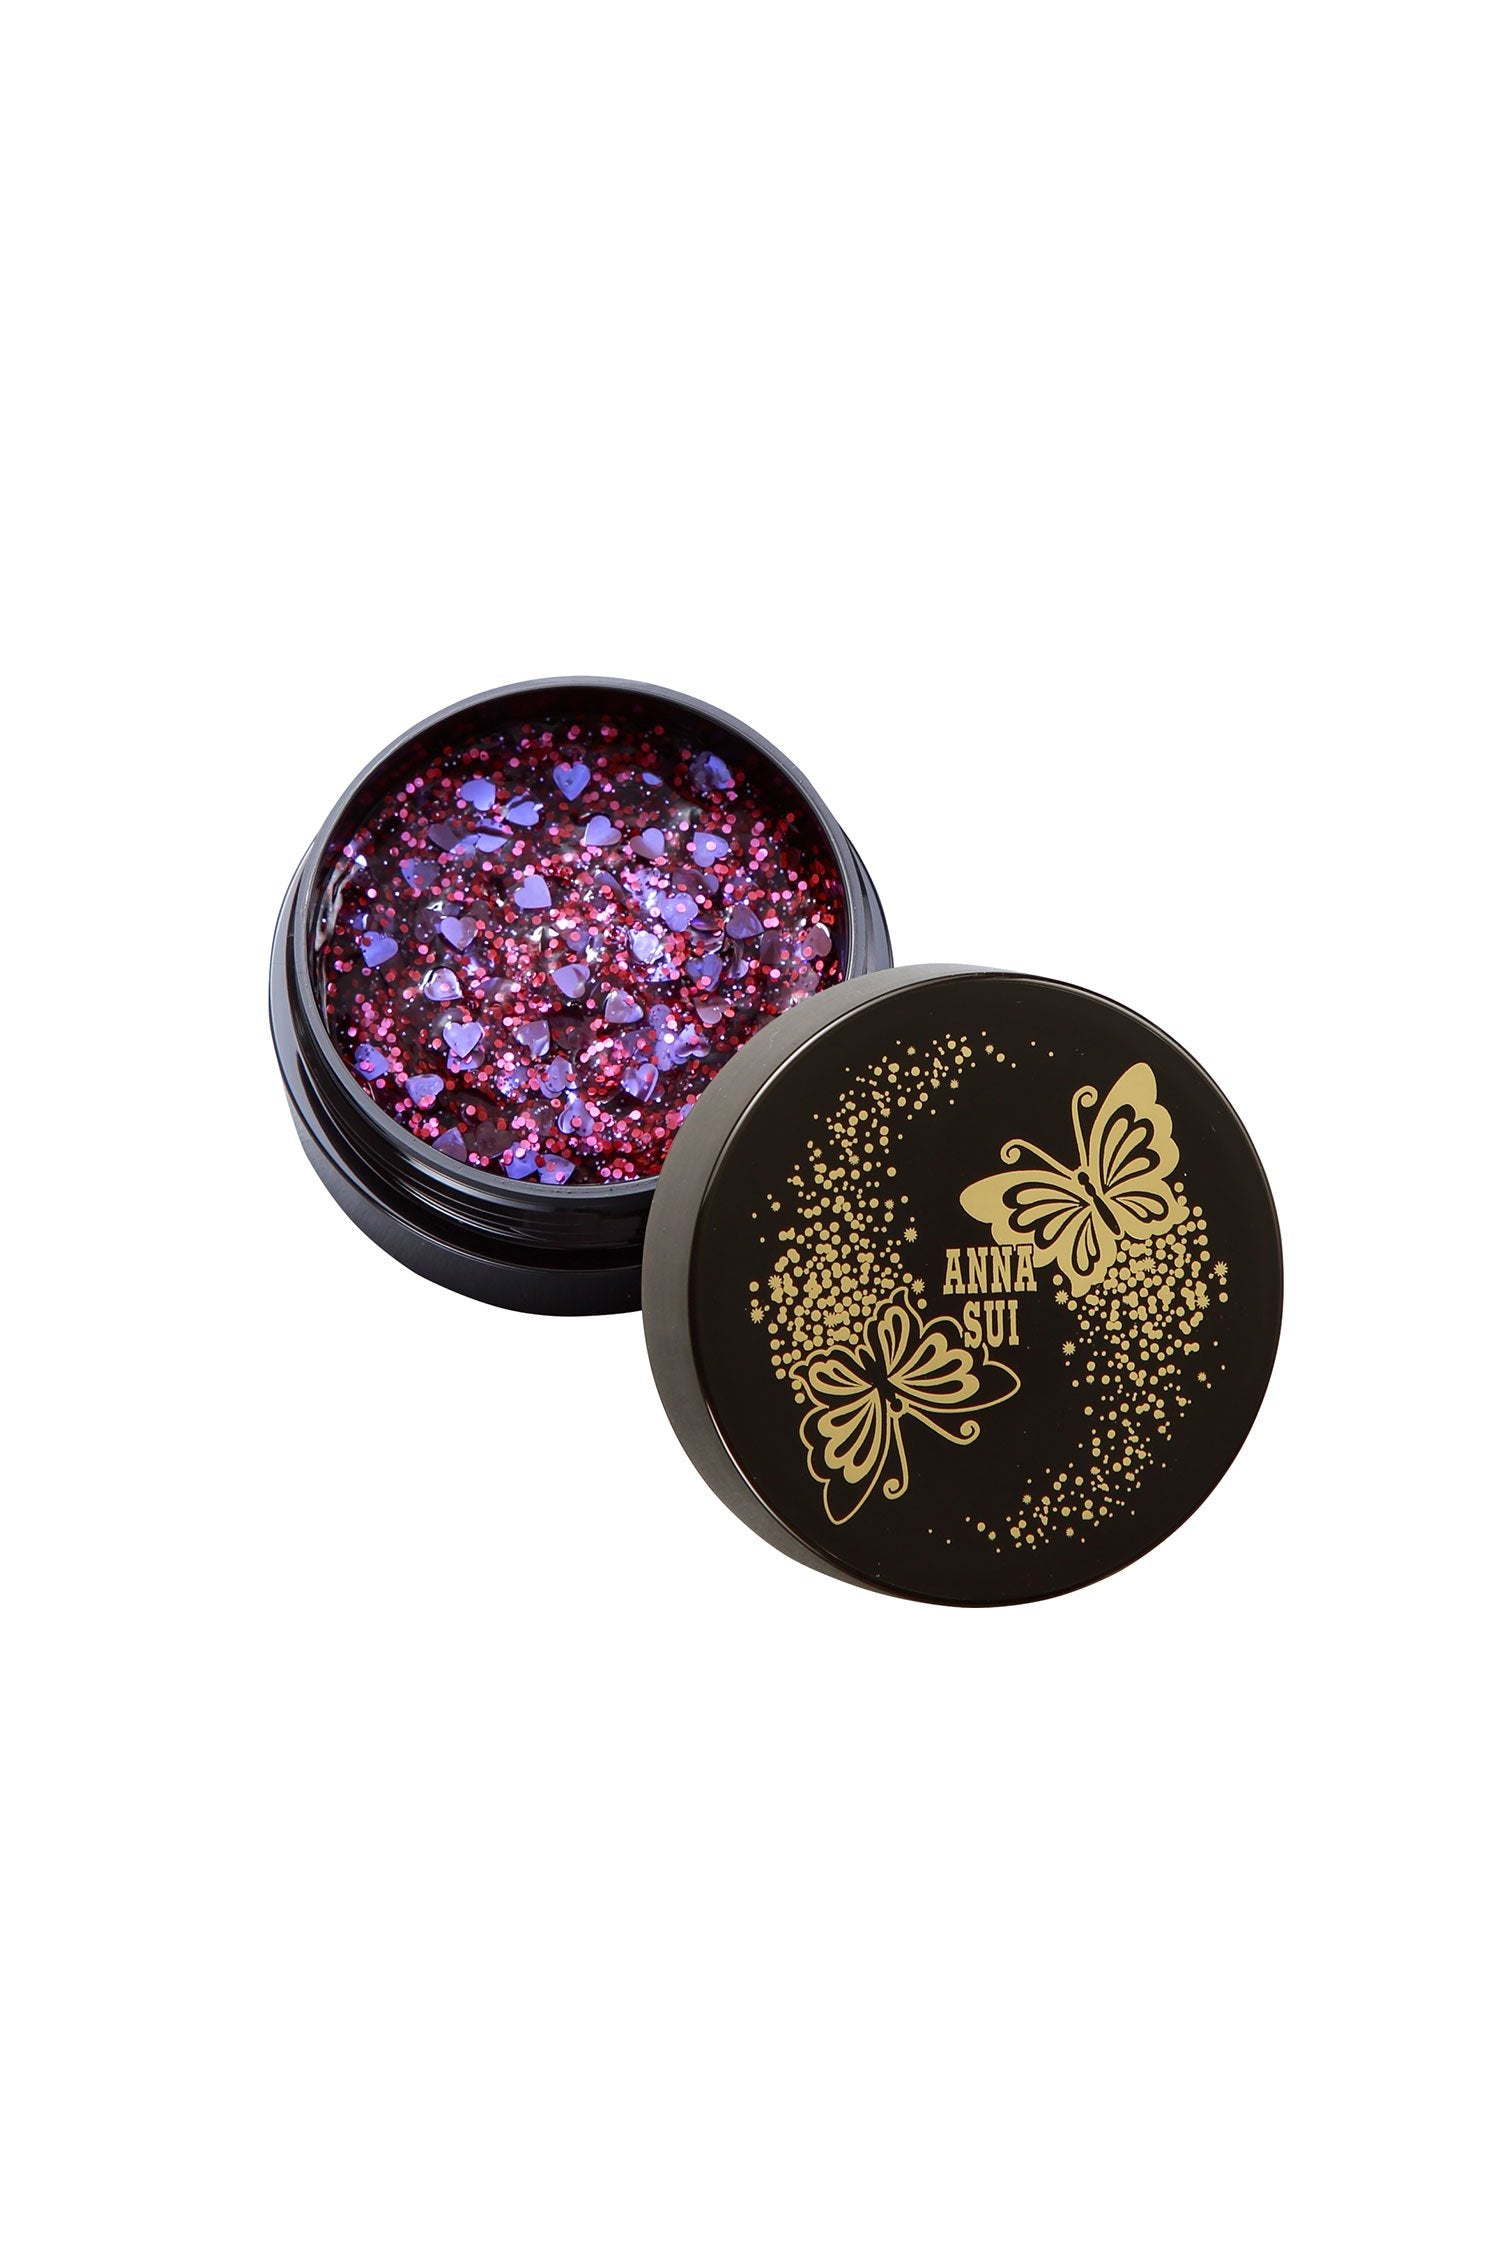 New: Hair Sparkle - Anna Sui